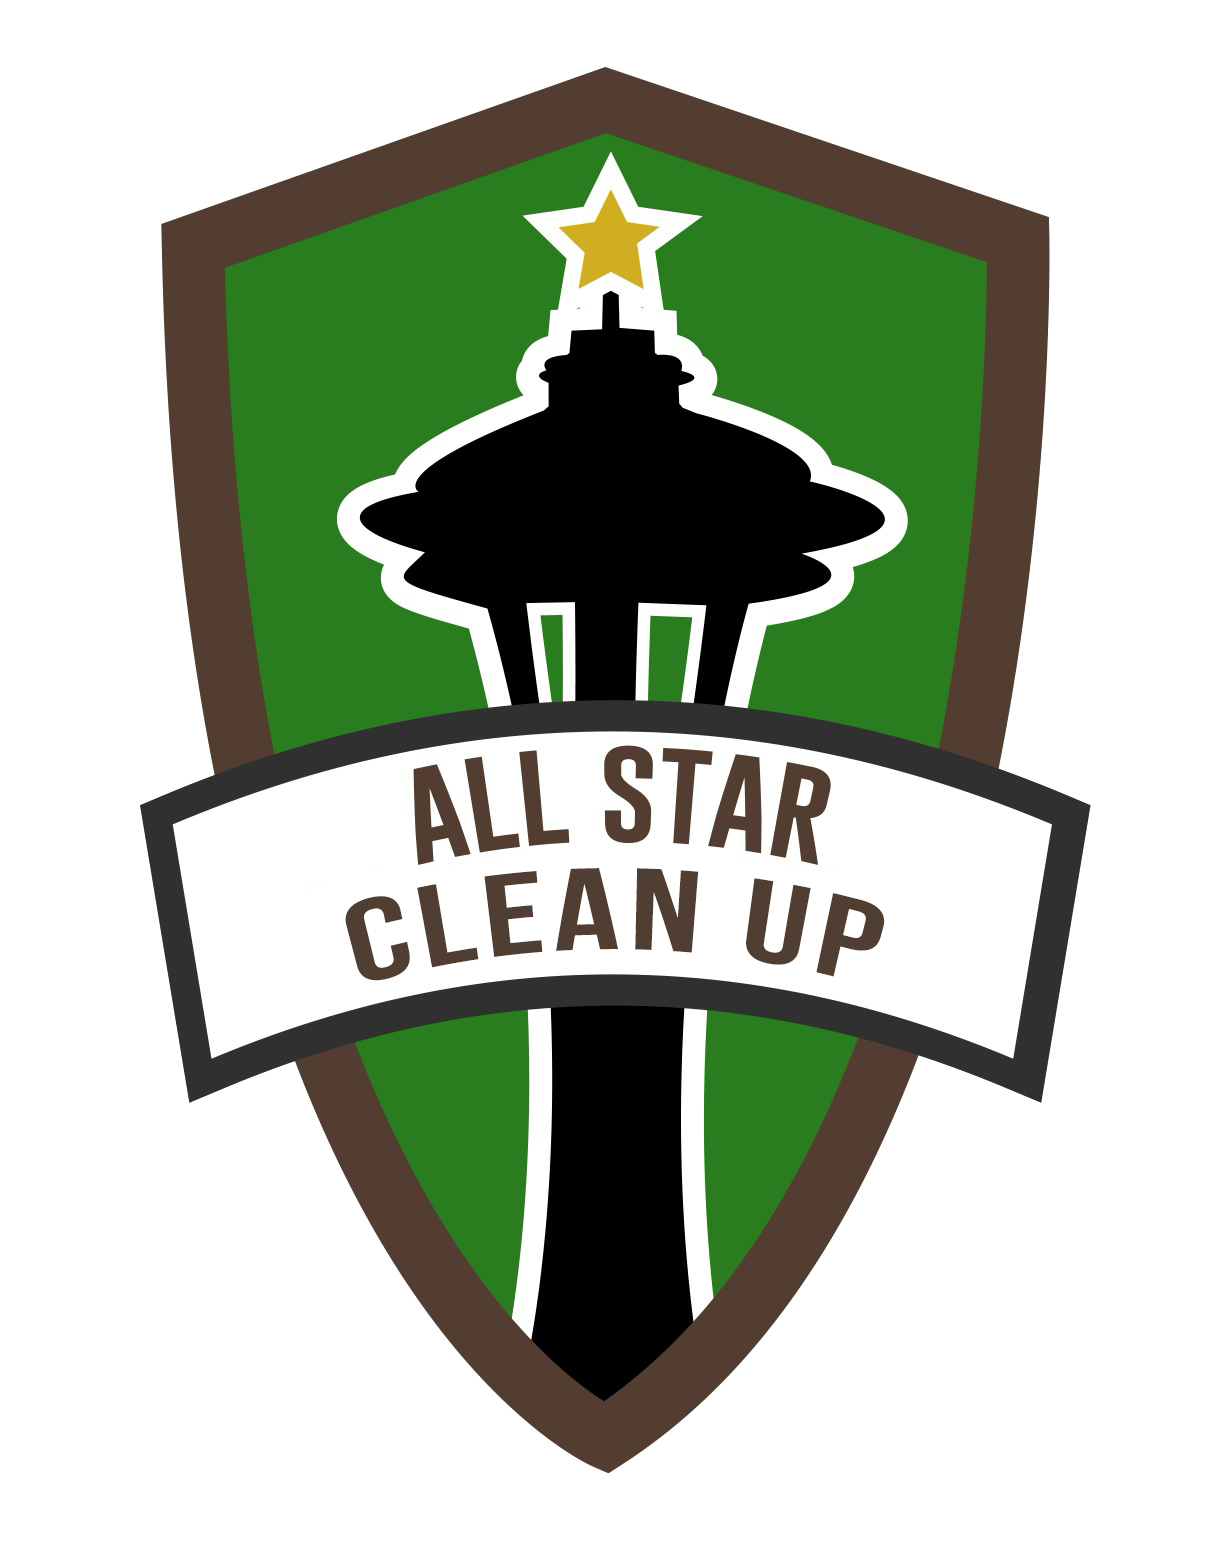 All Star Clean Up & Landscaping